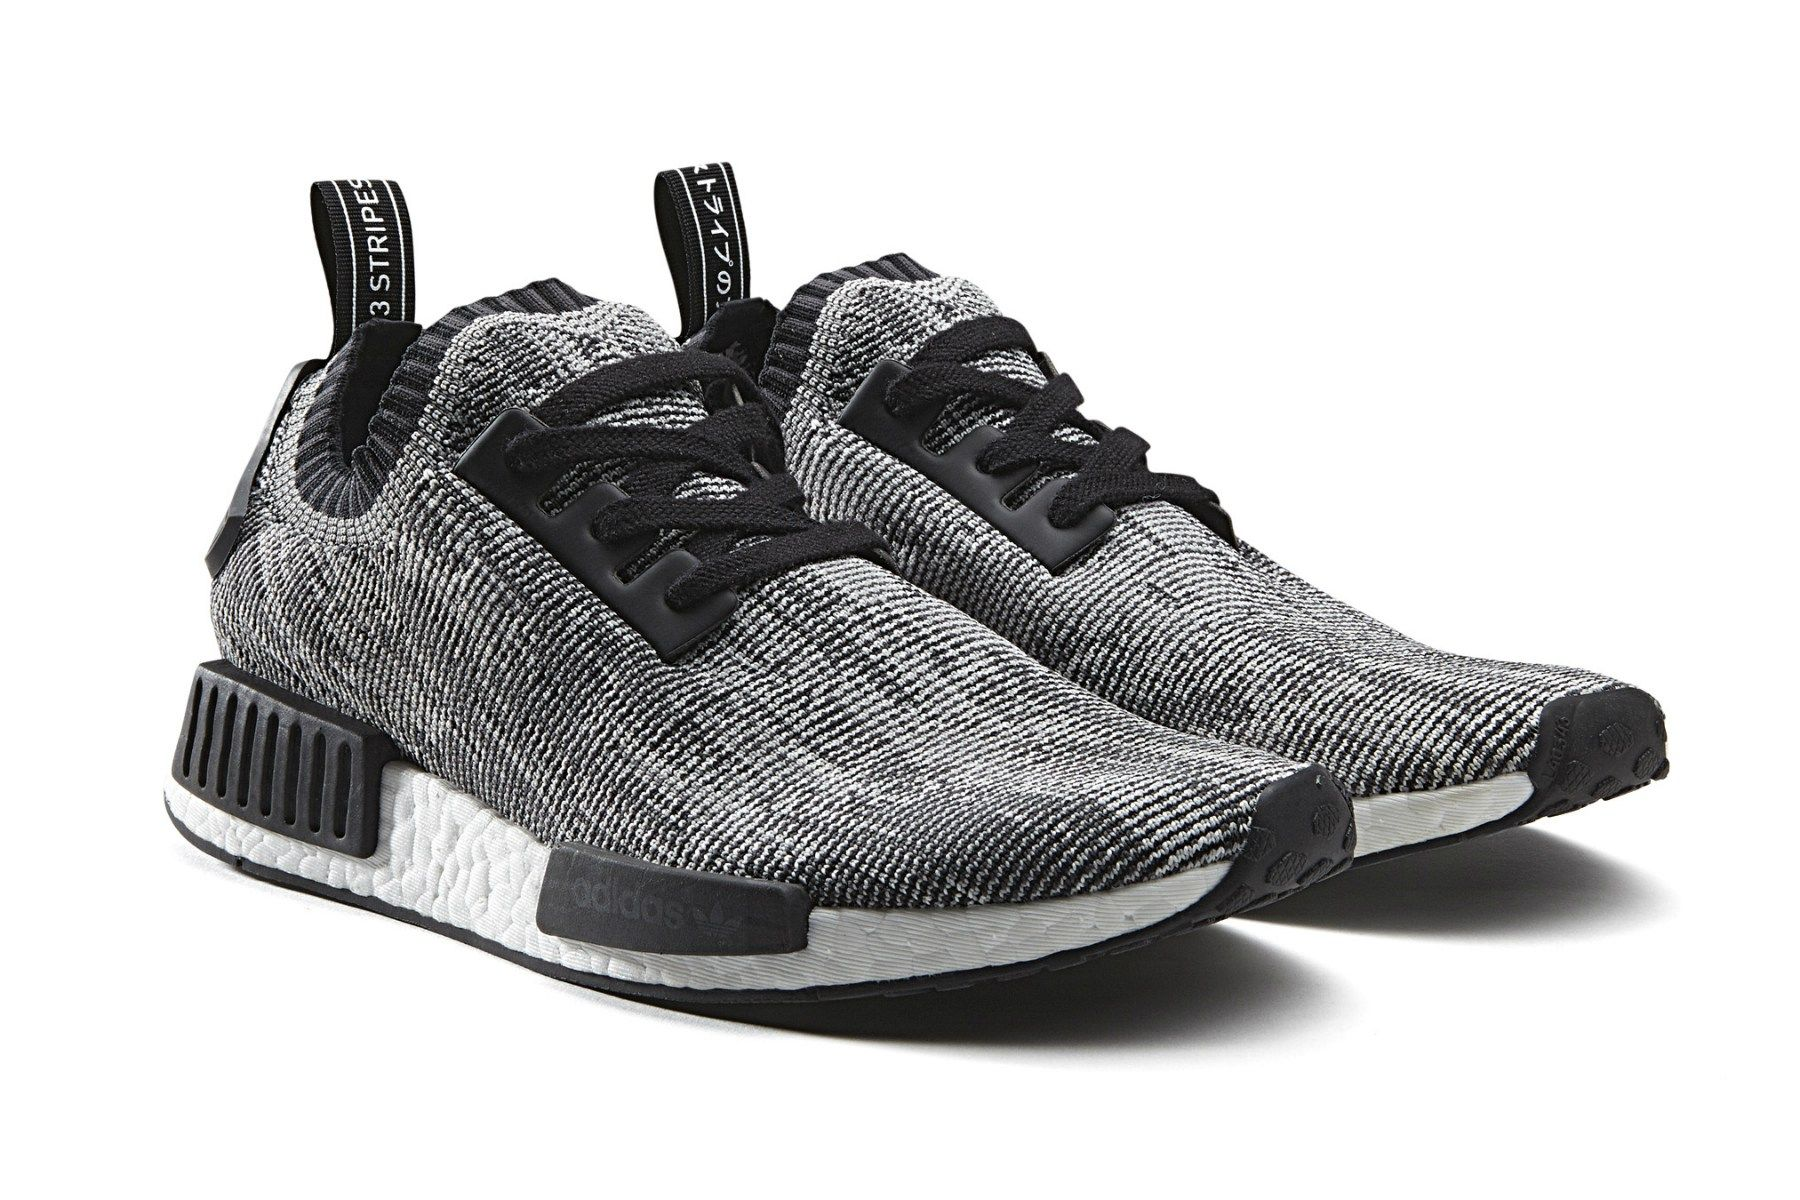 d9159367e COMPLETE List of Adidas NMD Releases   Colorways  Updated . adidas